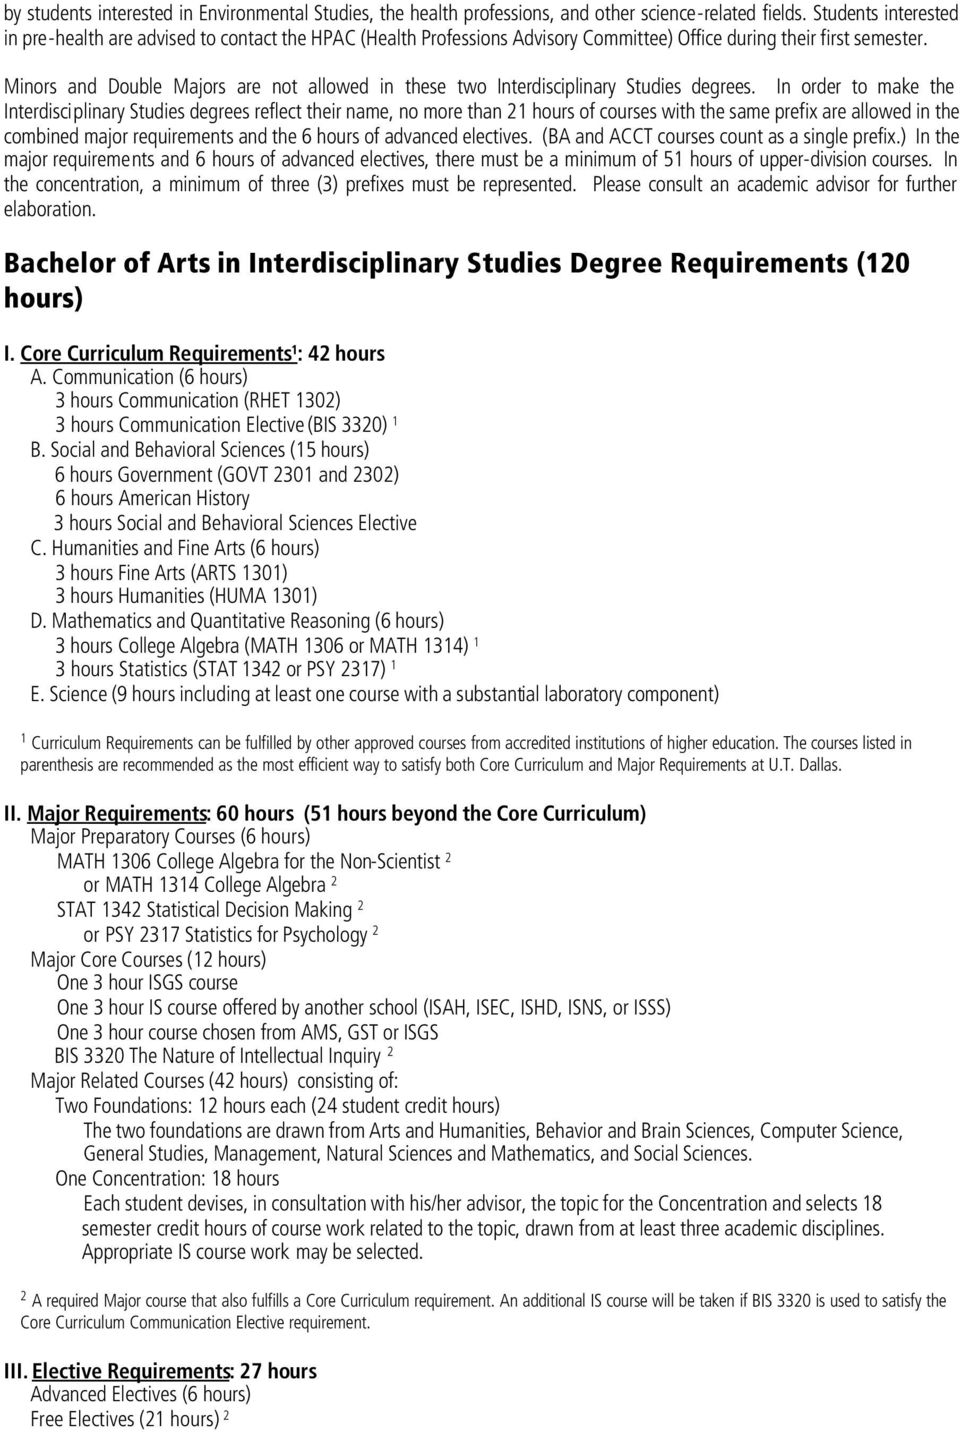 Minors and Double Majors are not allowed in these two Interdisciplinary Studies degrees.